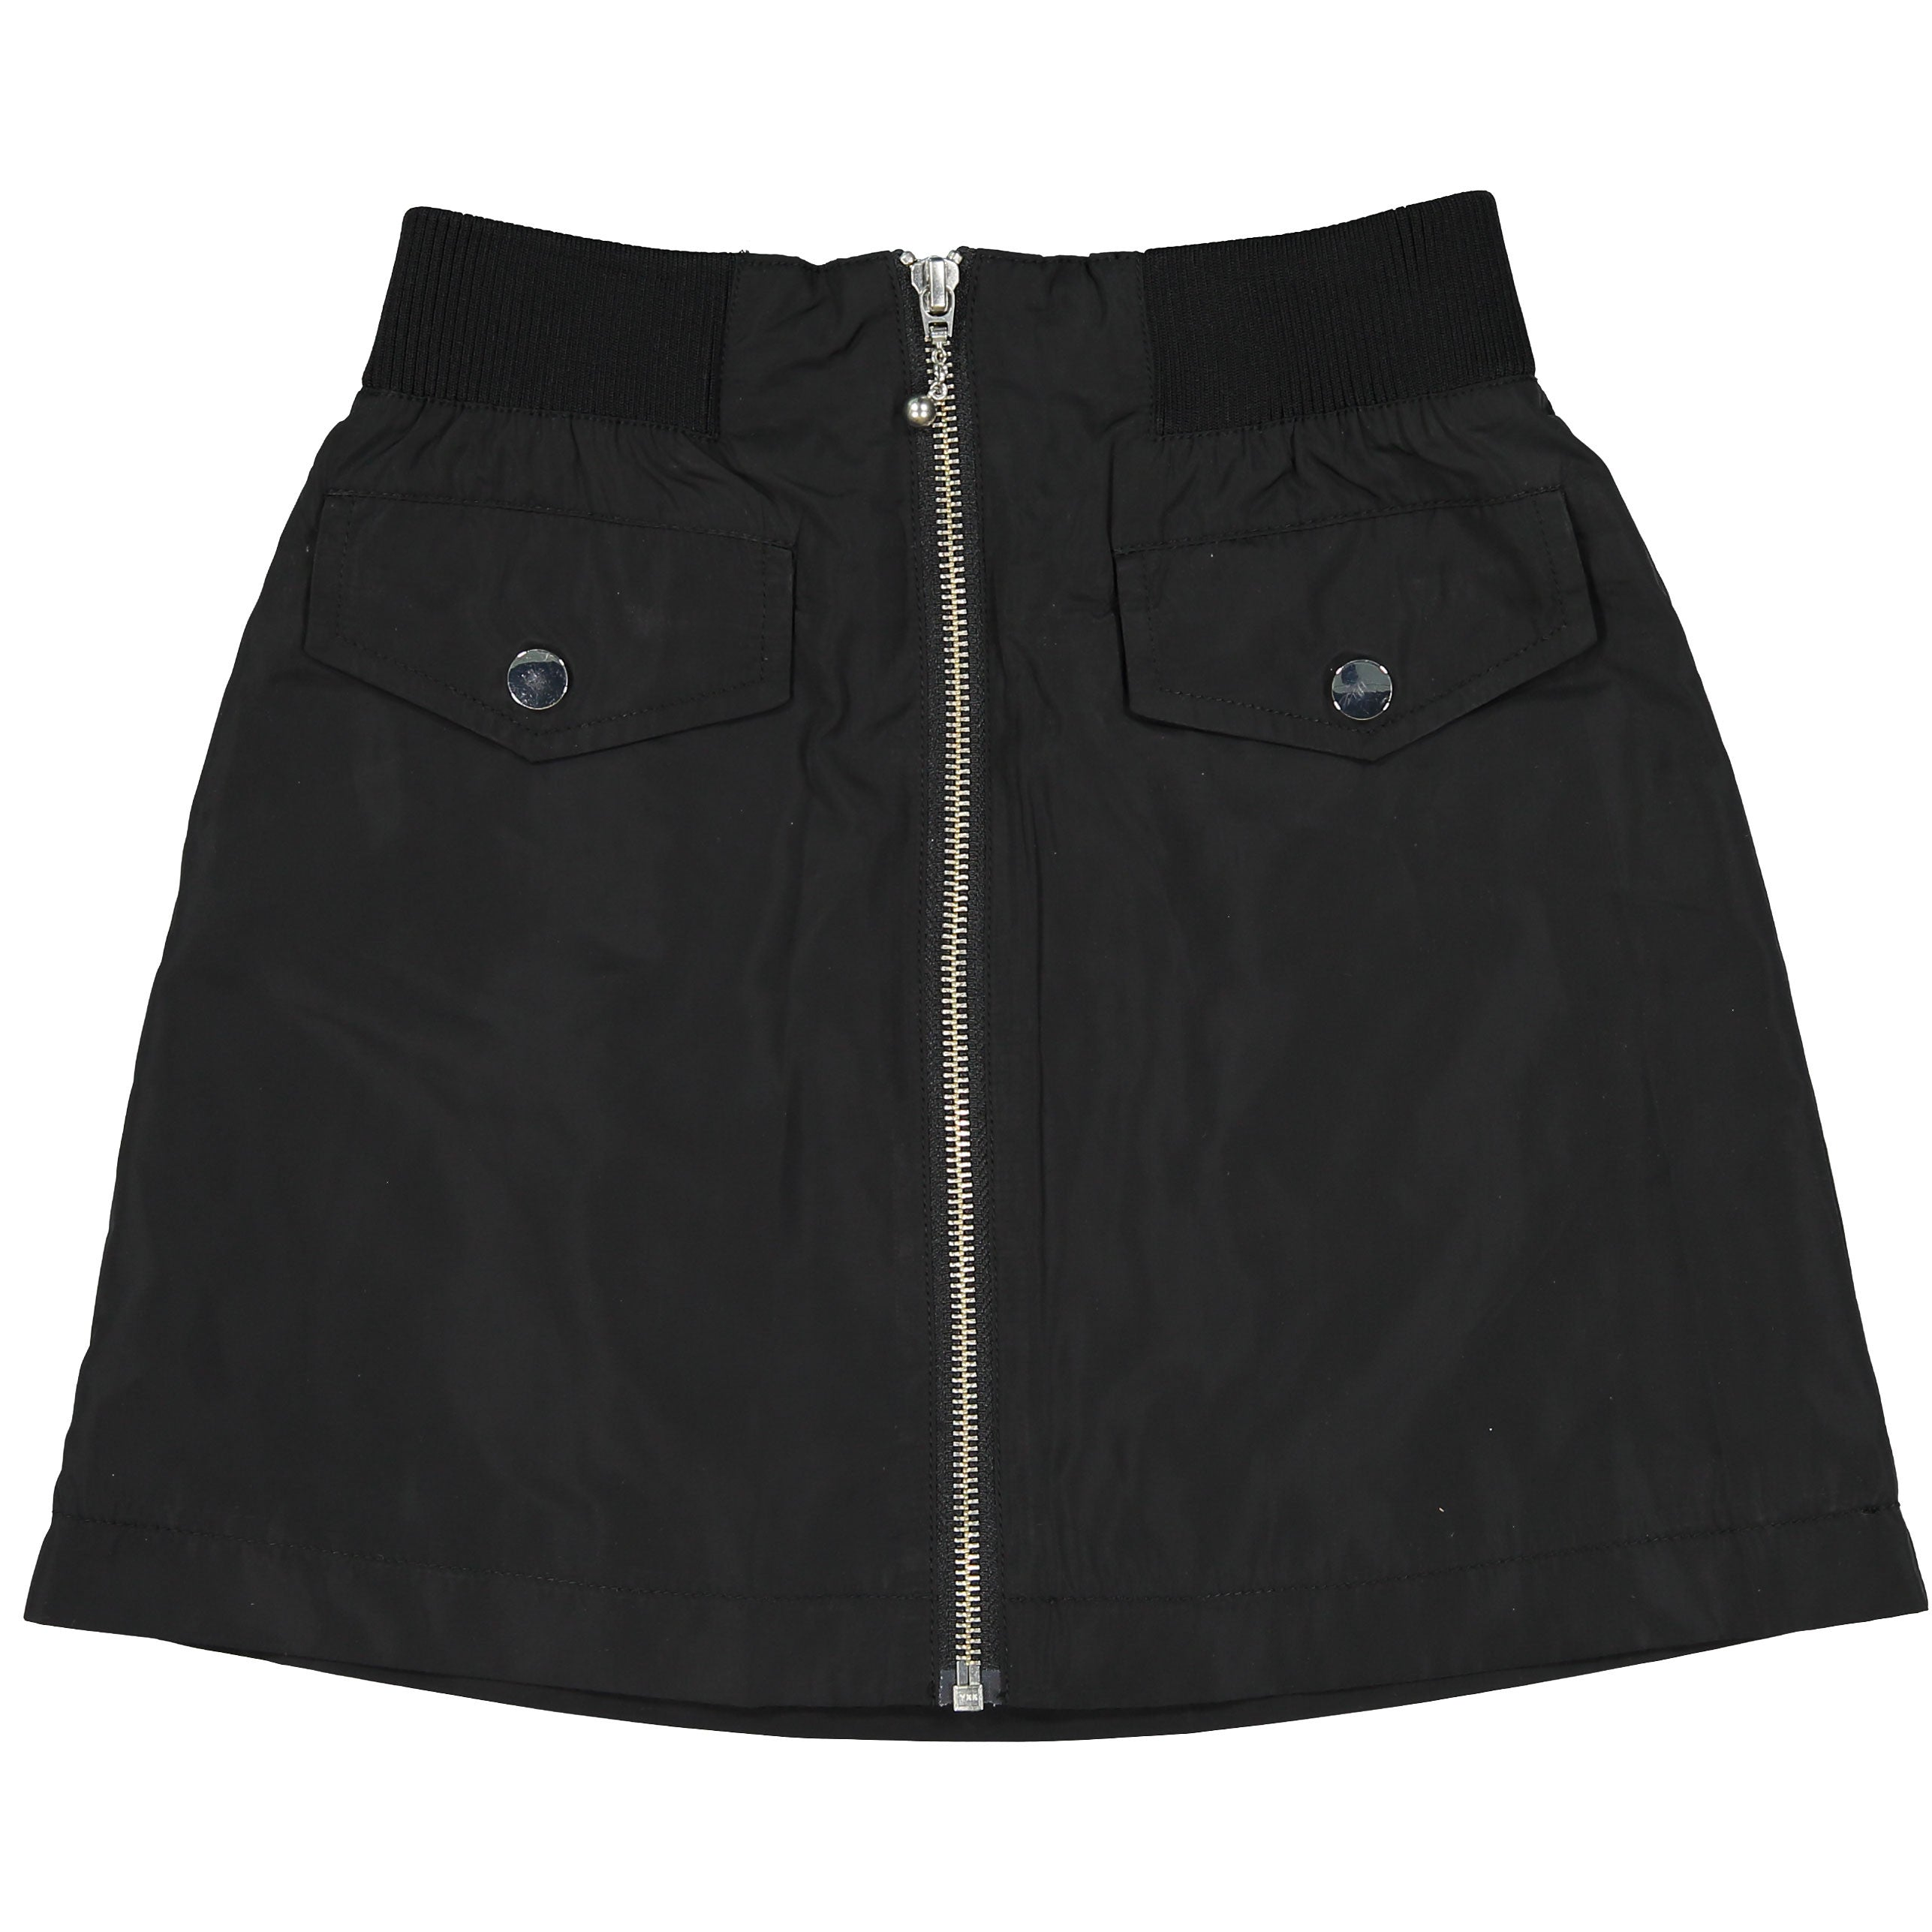 Remix Black Liana Skirt - Ladida